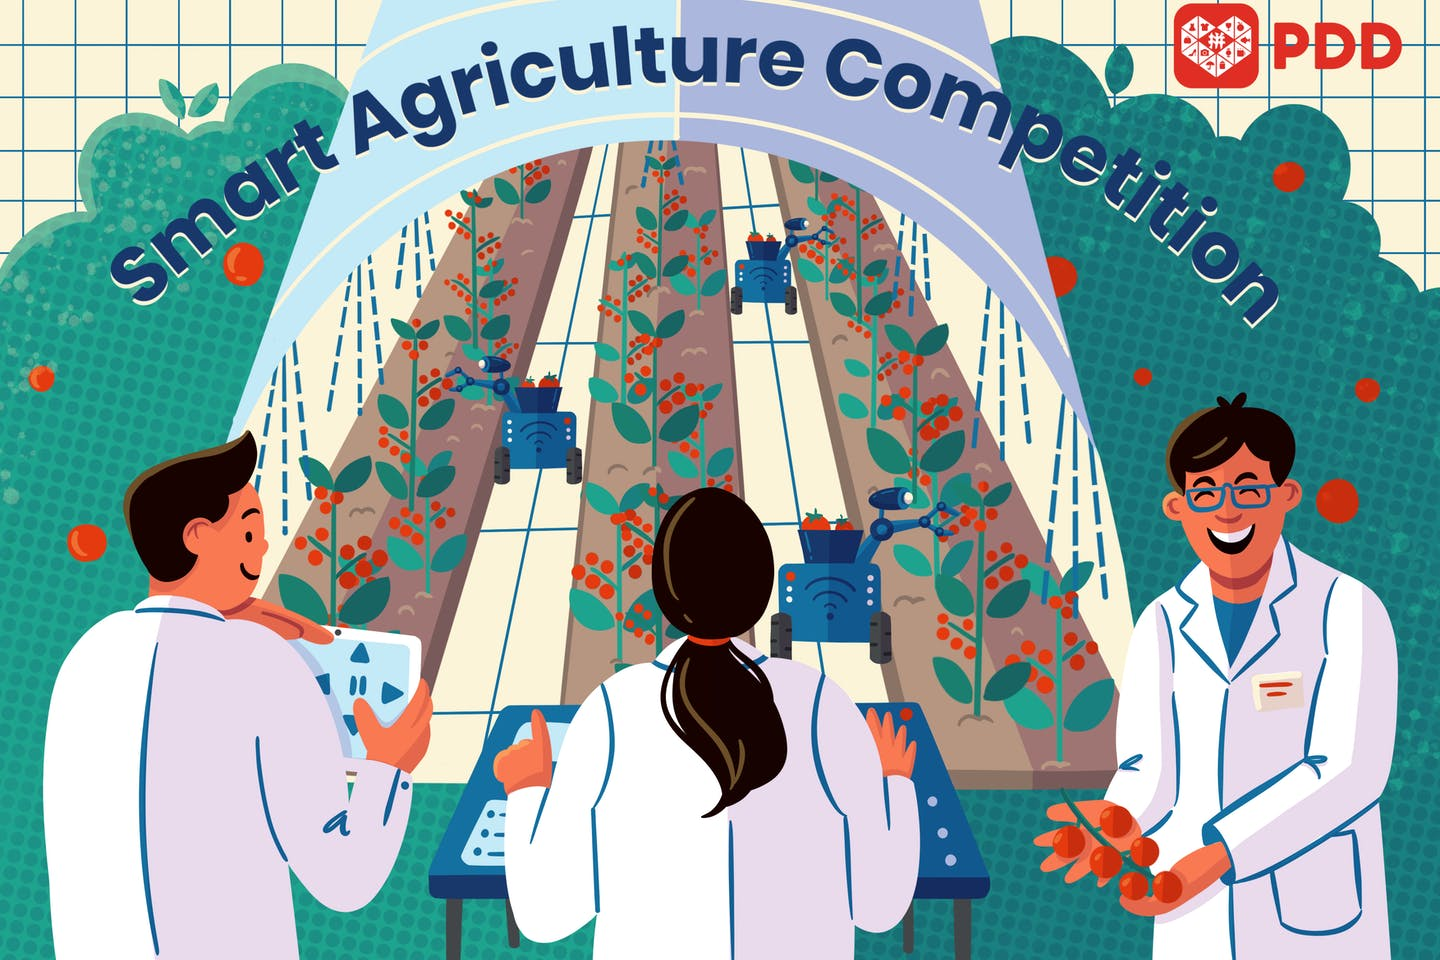 Pinduoduo launches 2021 Smart Agriculture Competition